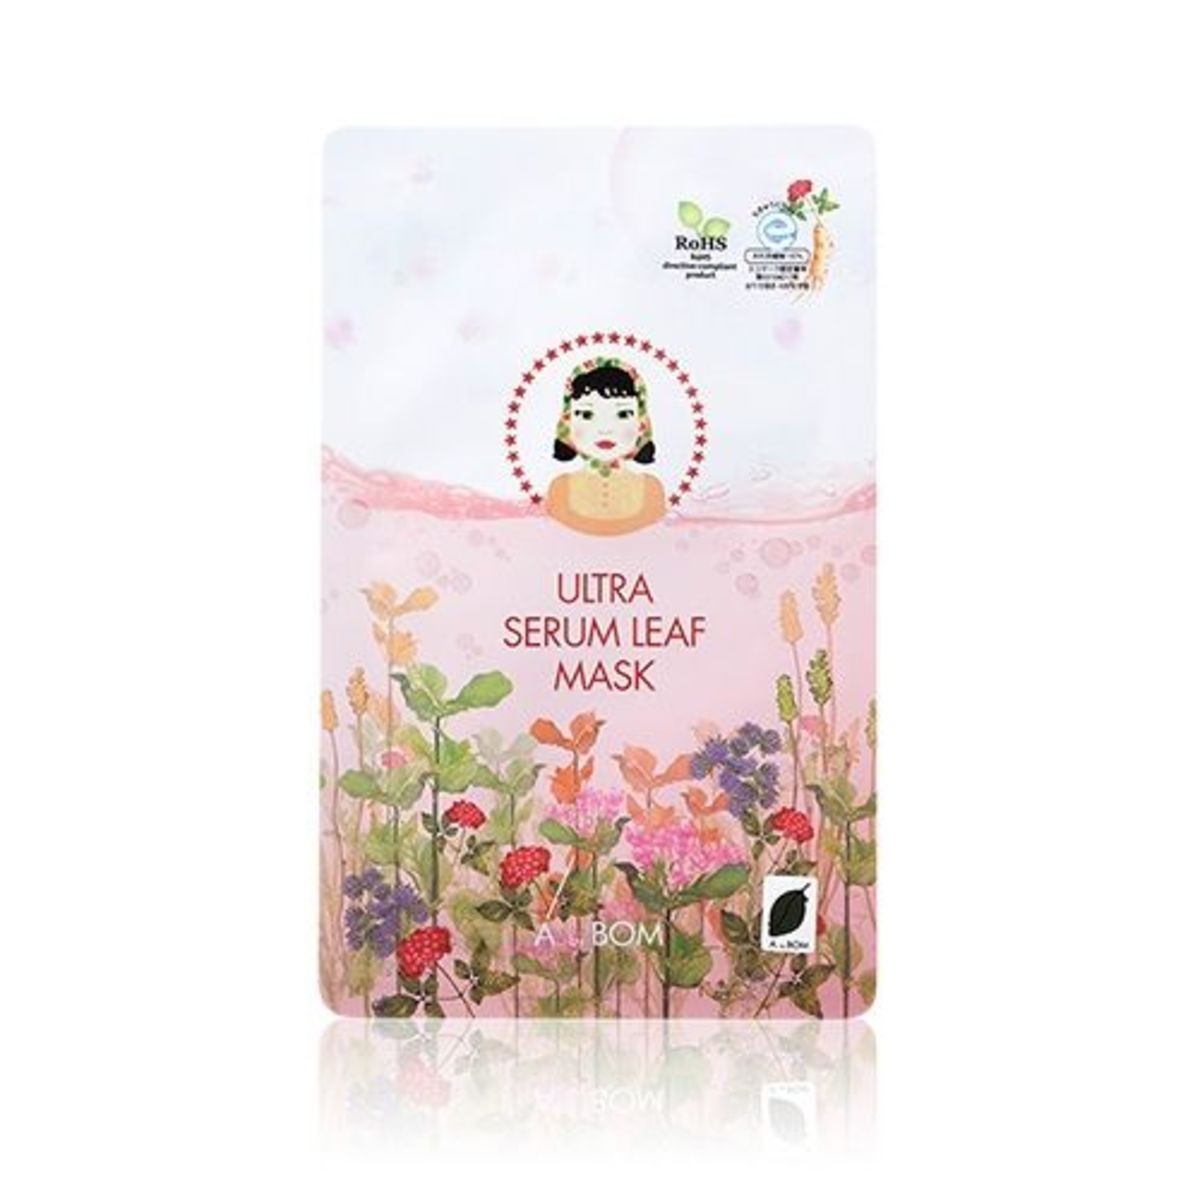 Ultra Serum Leaf Mask 5pcs  [Parallel Import] [Expired Day: 28/3/2021]